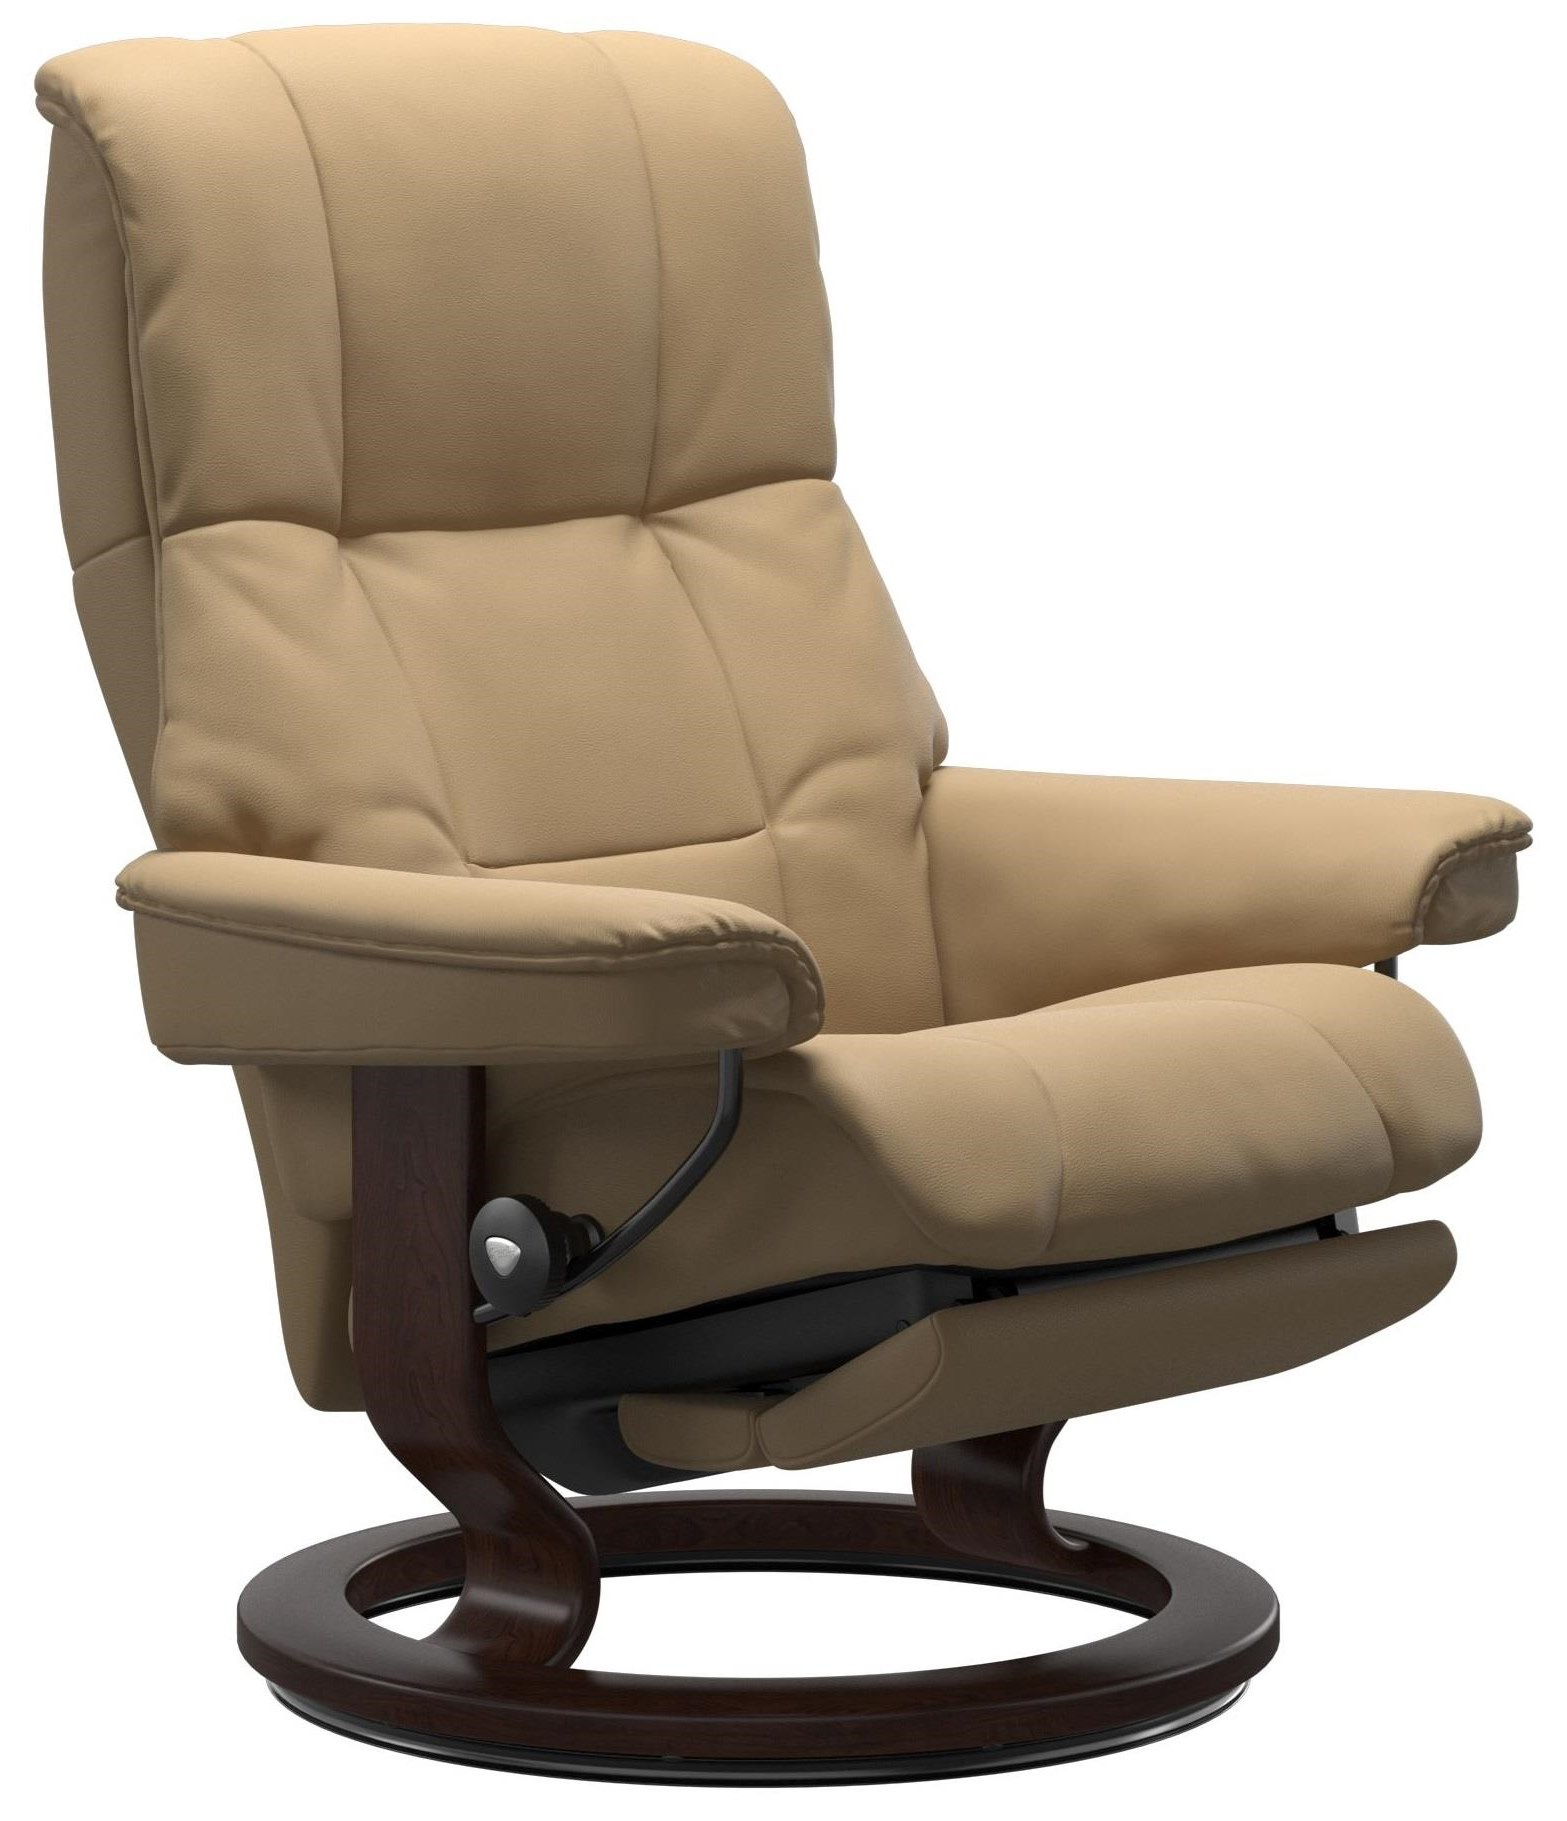 Mayfair Large Classic Power Recliner by Stressless at Bennett's Furniture and Mattresses